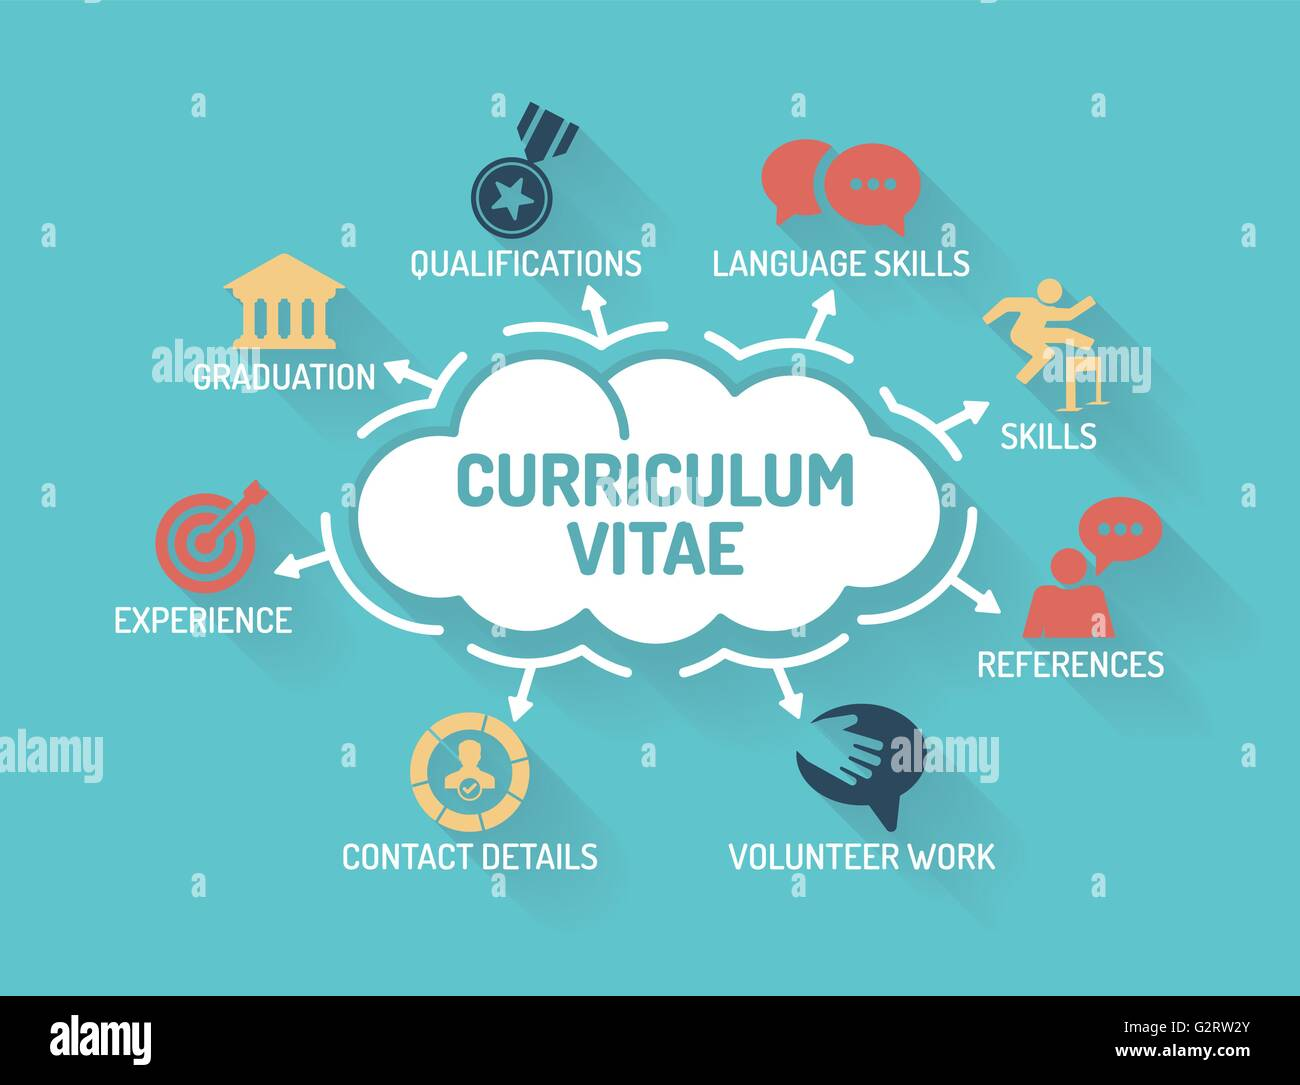 cv resume curriculum vitae design stock photos  u0026 cv resume curriculum vitae design stock images